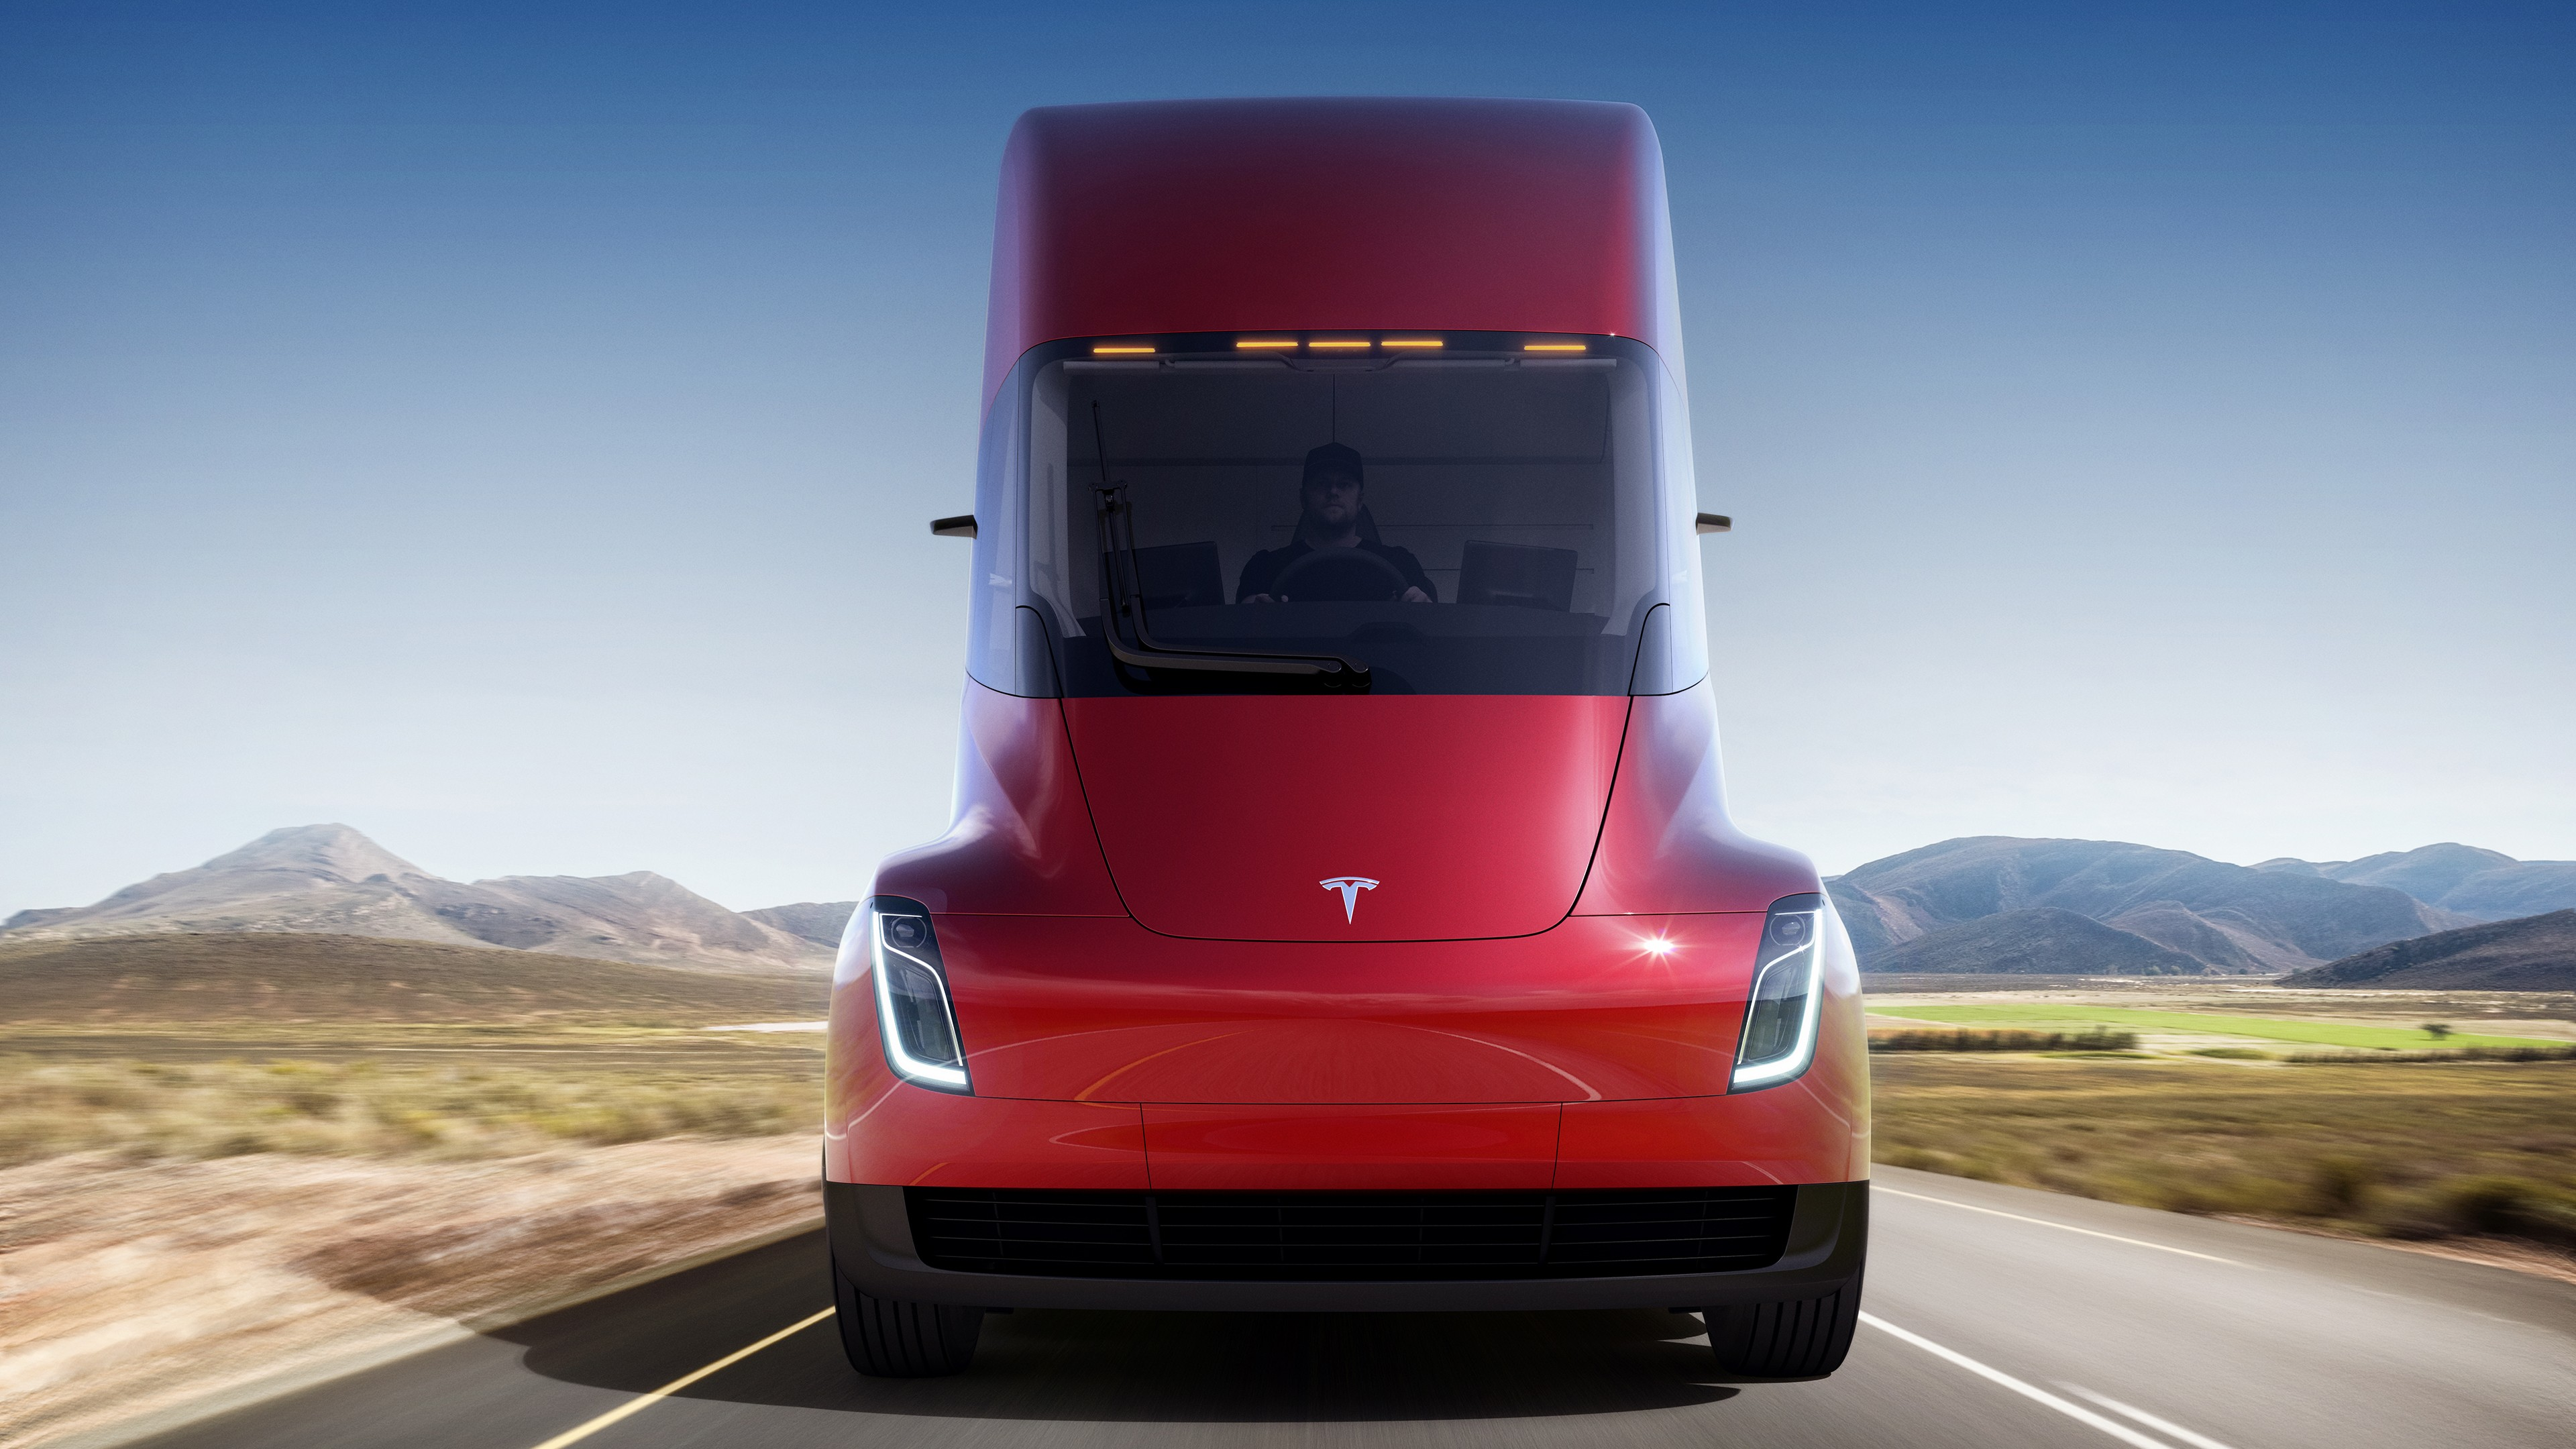 DHL orders 10 Tesla Semi electric trucks, mainly for shorter routes